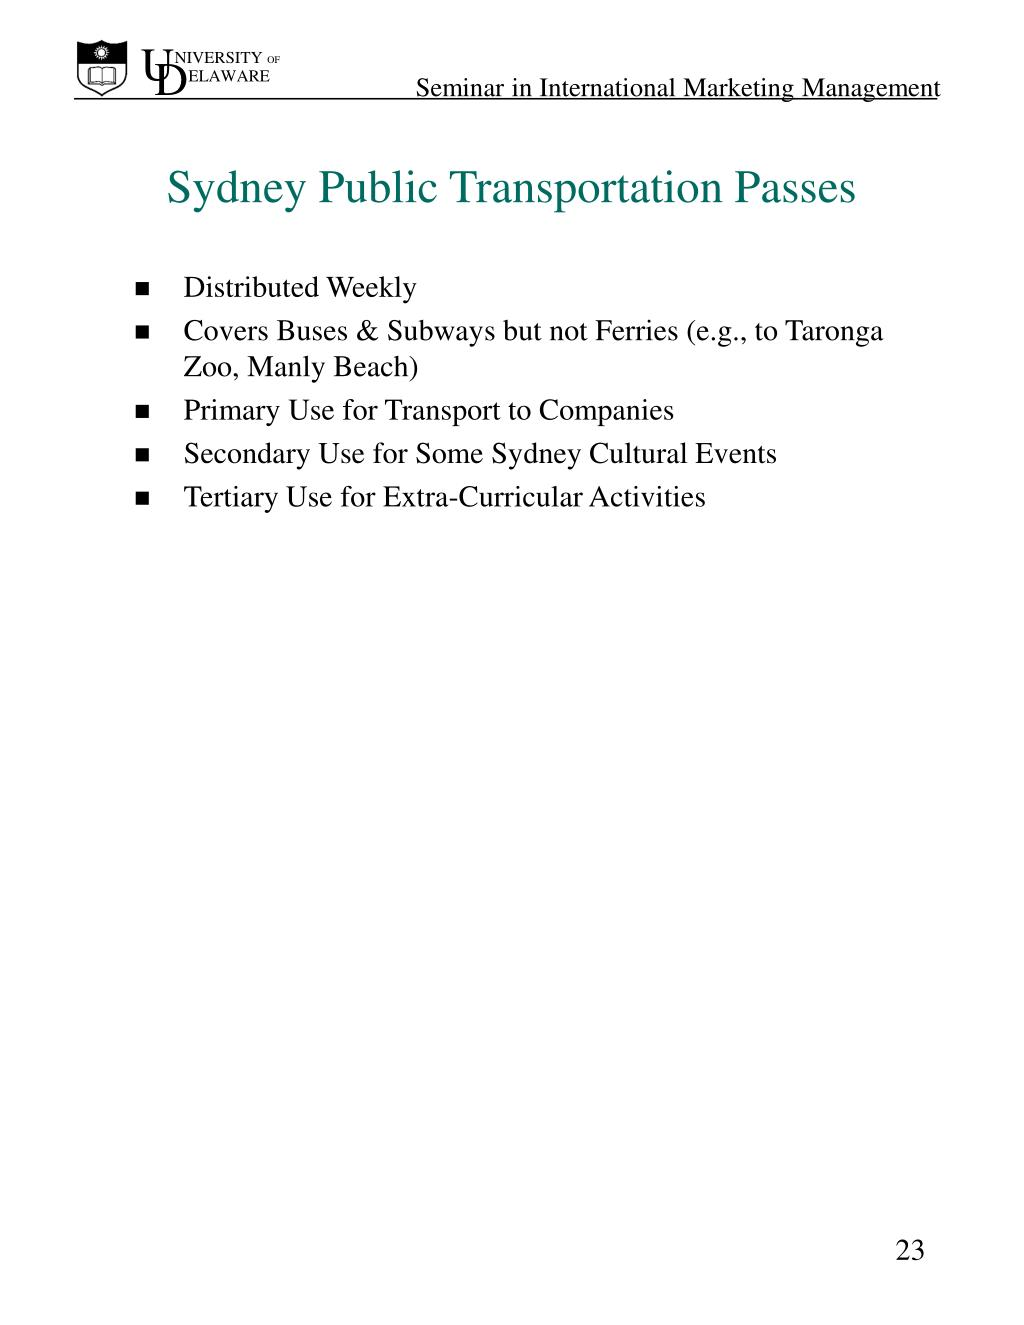 Sydney Public Transportation Passes